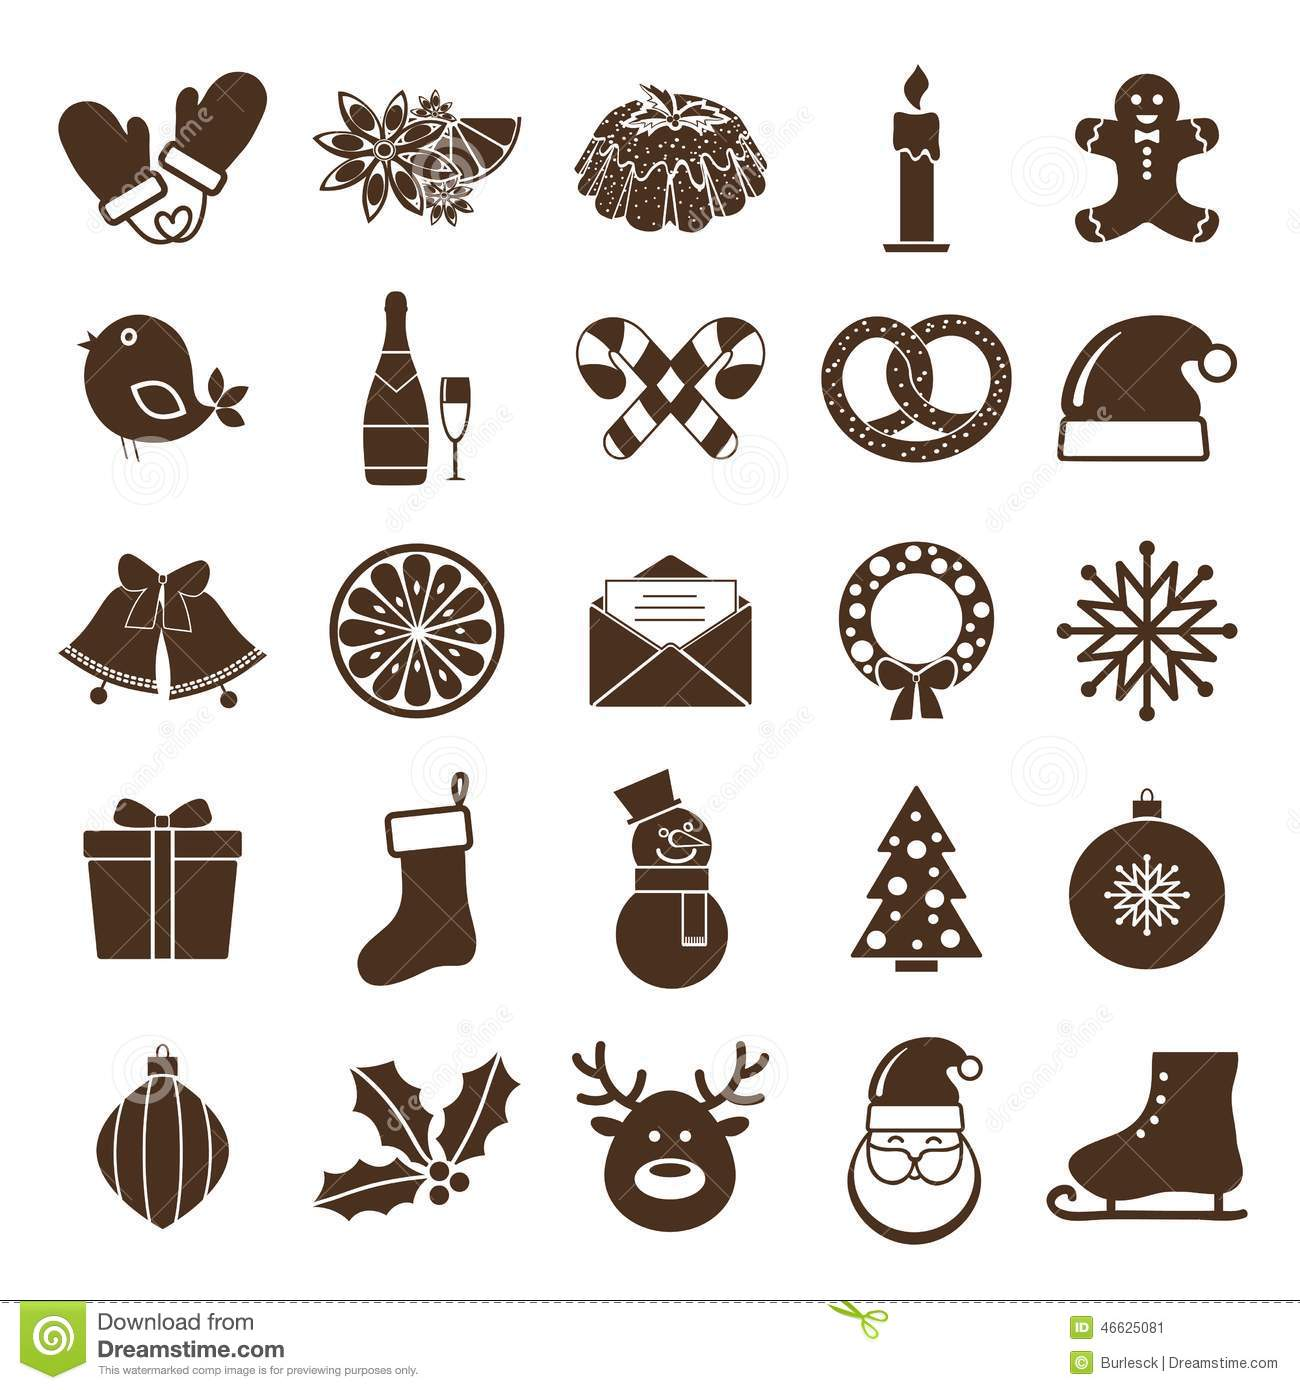 christmas silhouettes icons stock vector image 46625081. Black Bedroom Furniture Sets. Home Design Ideas